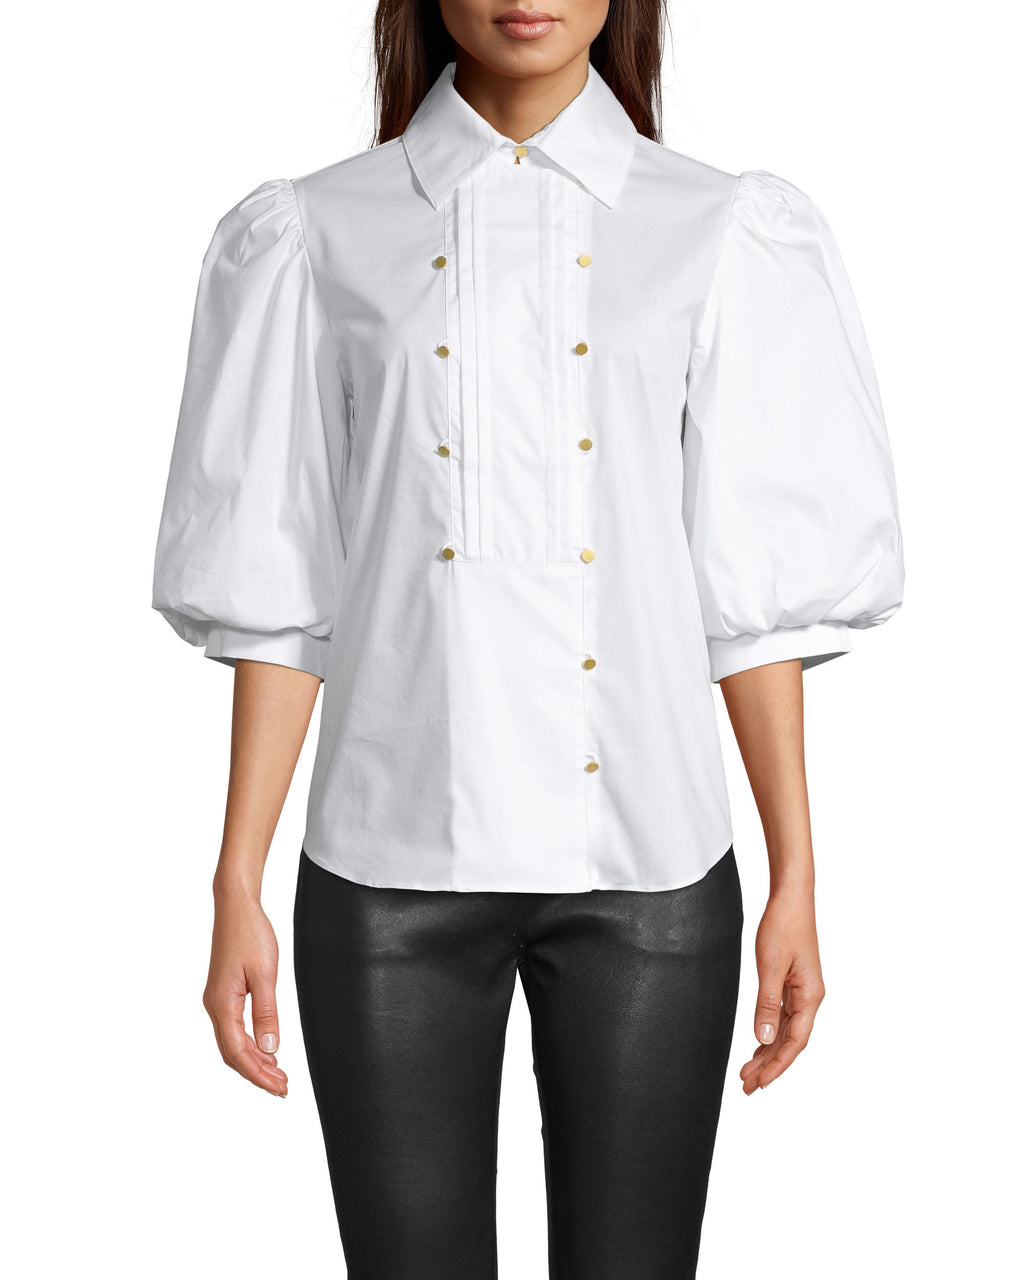 CT18266 - COTTON POPLIN TUXEDO PUFF SLEEVE BLOUSE - tops - blouses - As seen on our fall 2020 runway, this blouse features a tuxedo front with asymmetrical gold button detail and cuffed puffed sleeves. Add 1 line break Stylist Tip: Pair with leather bottoms for an edgyensemble.